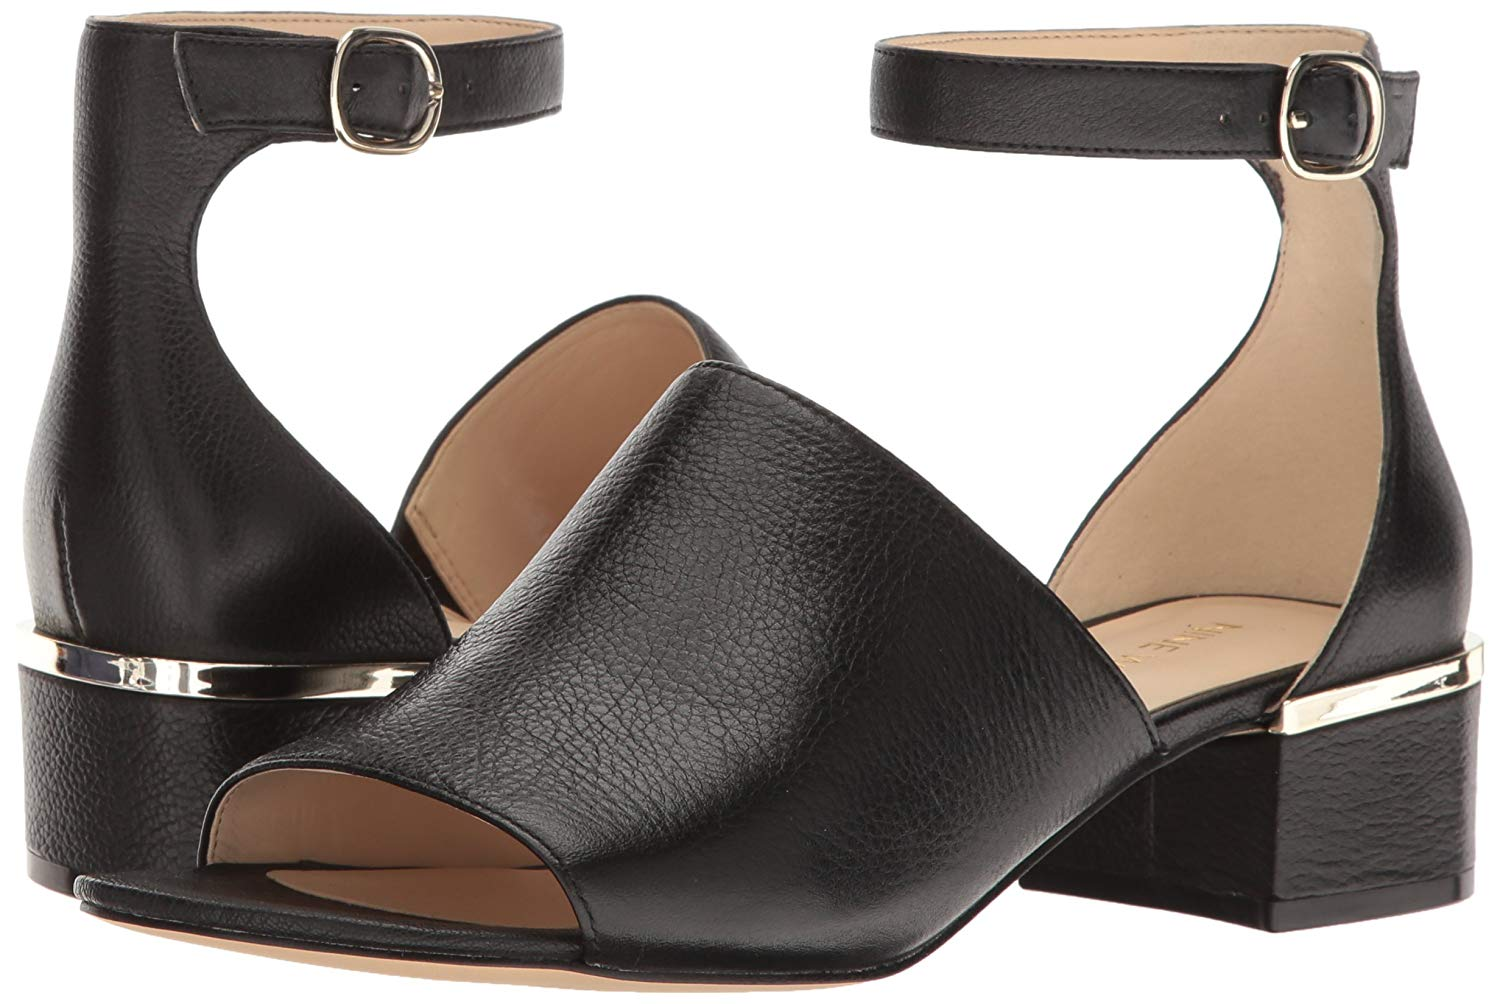 Nine West West West Womens Yorada Suede Peep Toe Casual Ankle Strap Sandals 1fb2a3